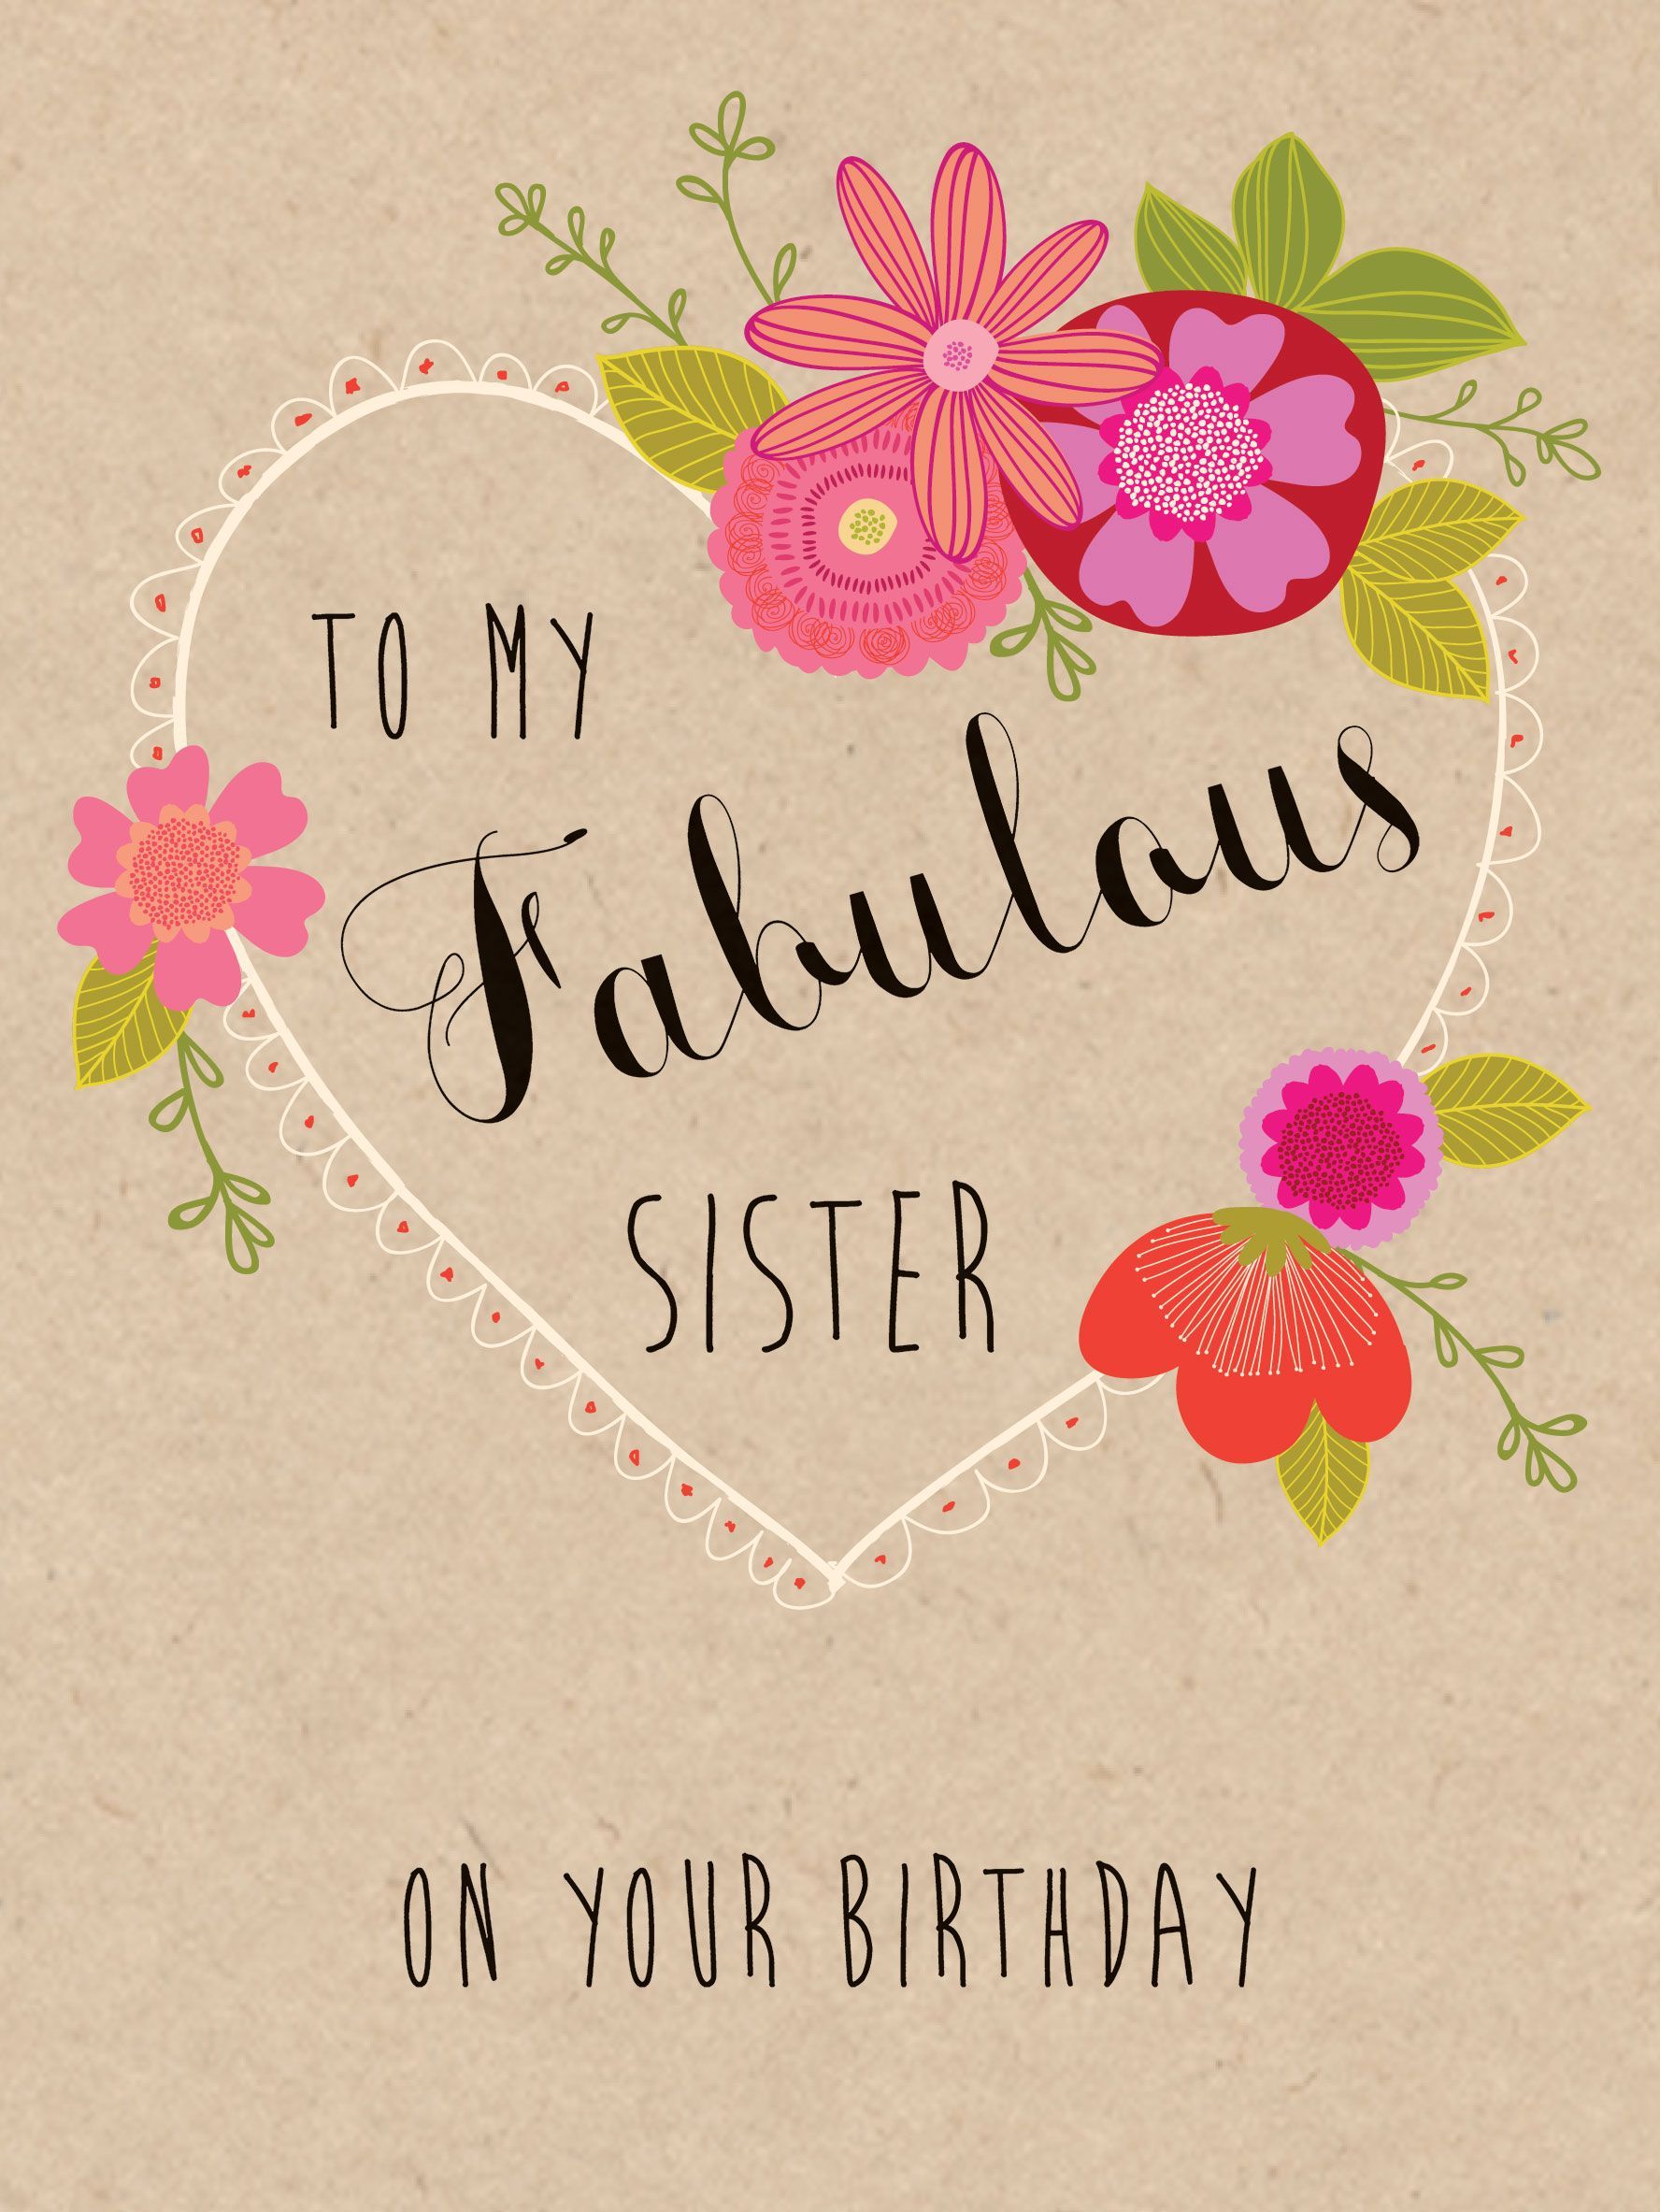 Pin By Bettyjoe Reich On Greeting Cards Happy Birthday Cards Happy Birthday Sister Funny Birthday Messages